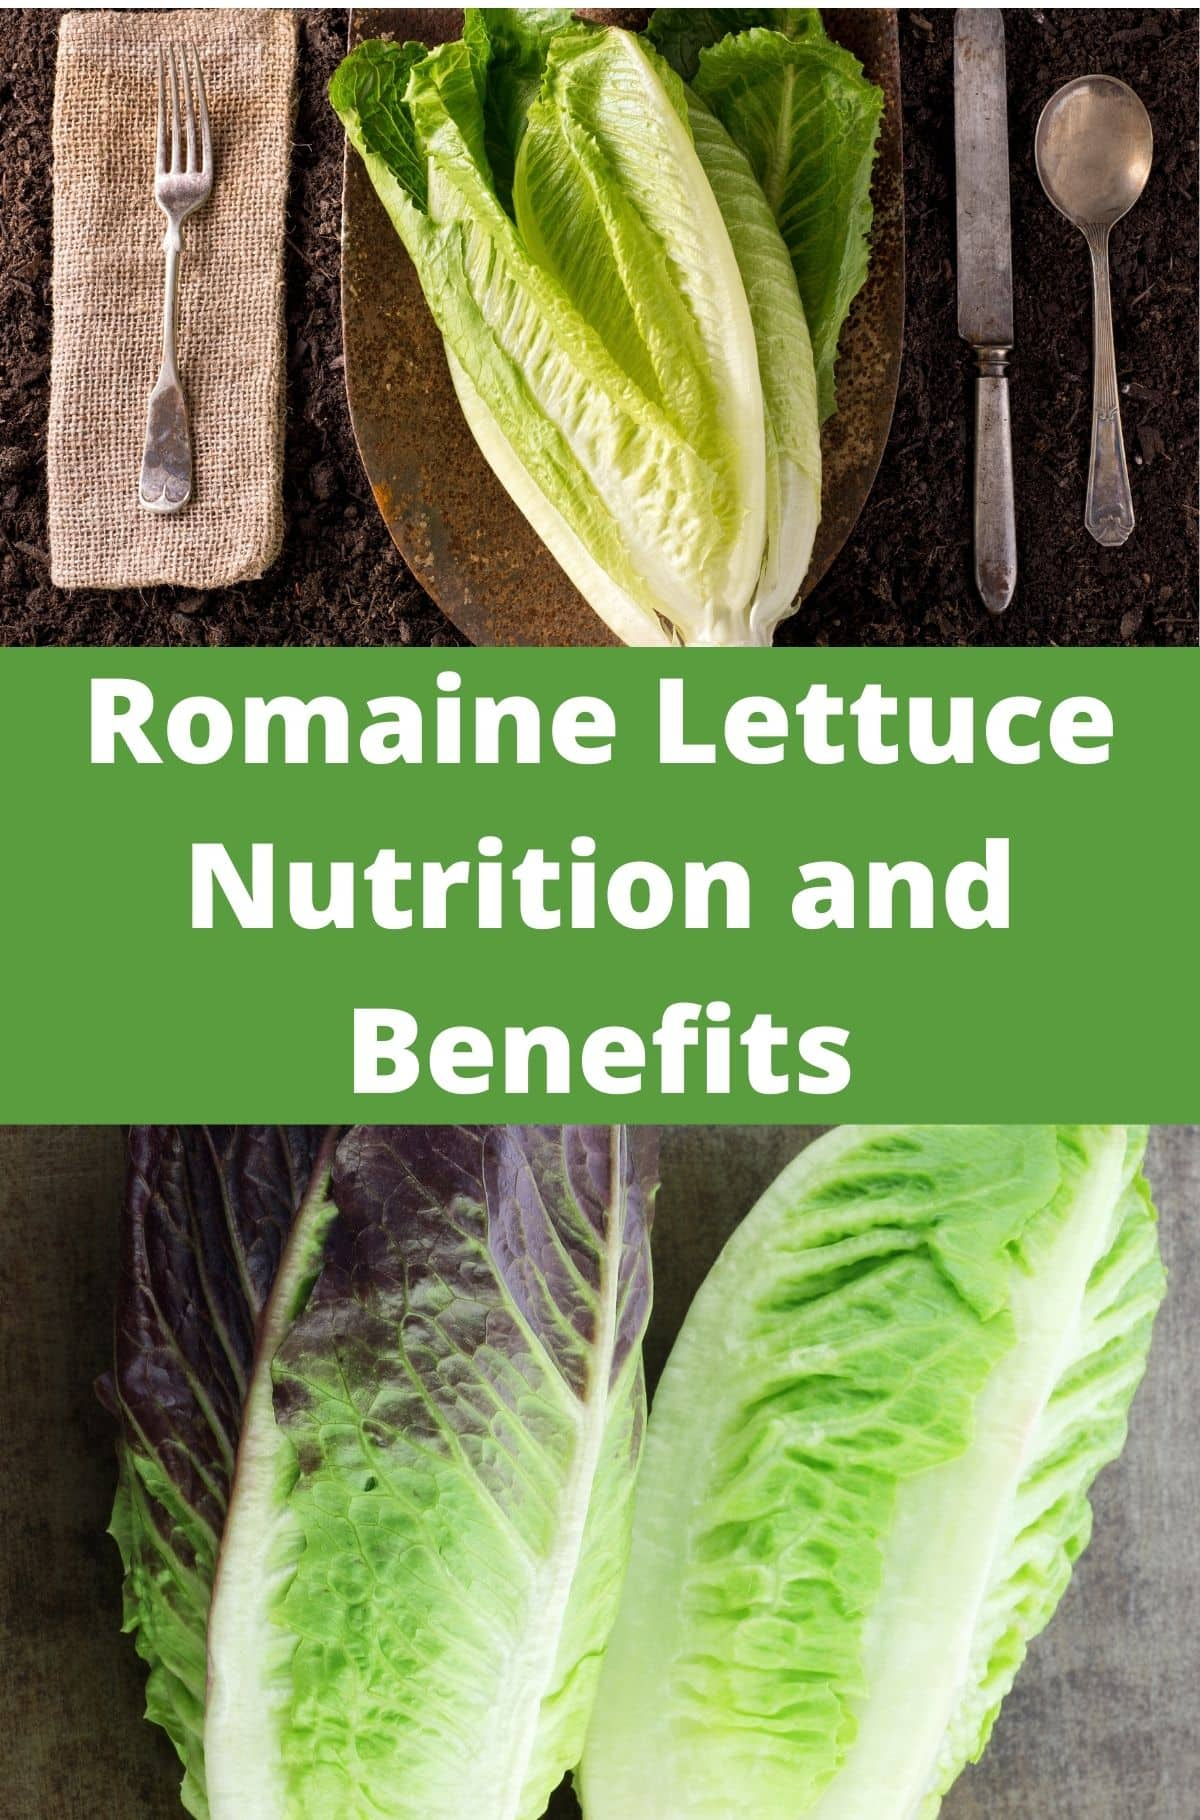 Romaine Lettuce Nutrition and Benefits